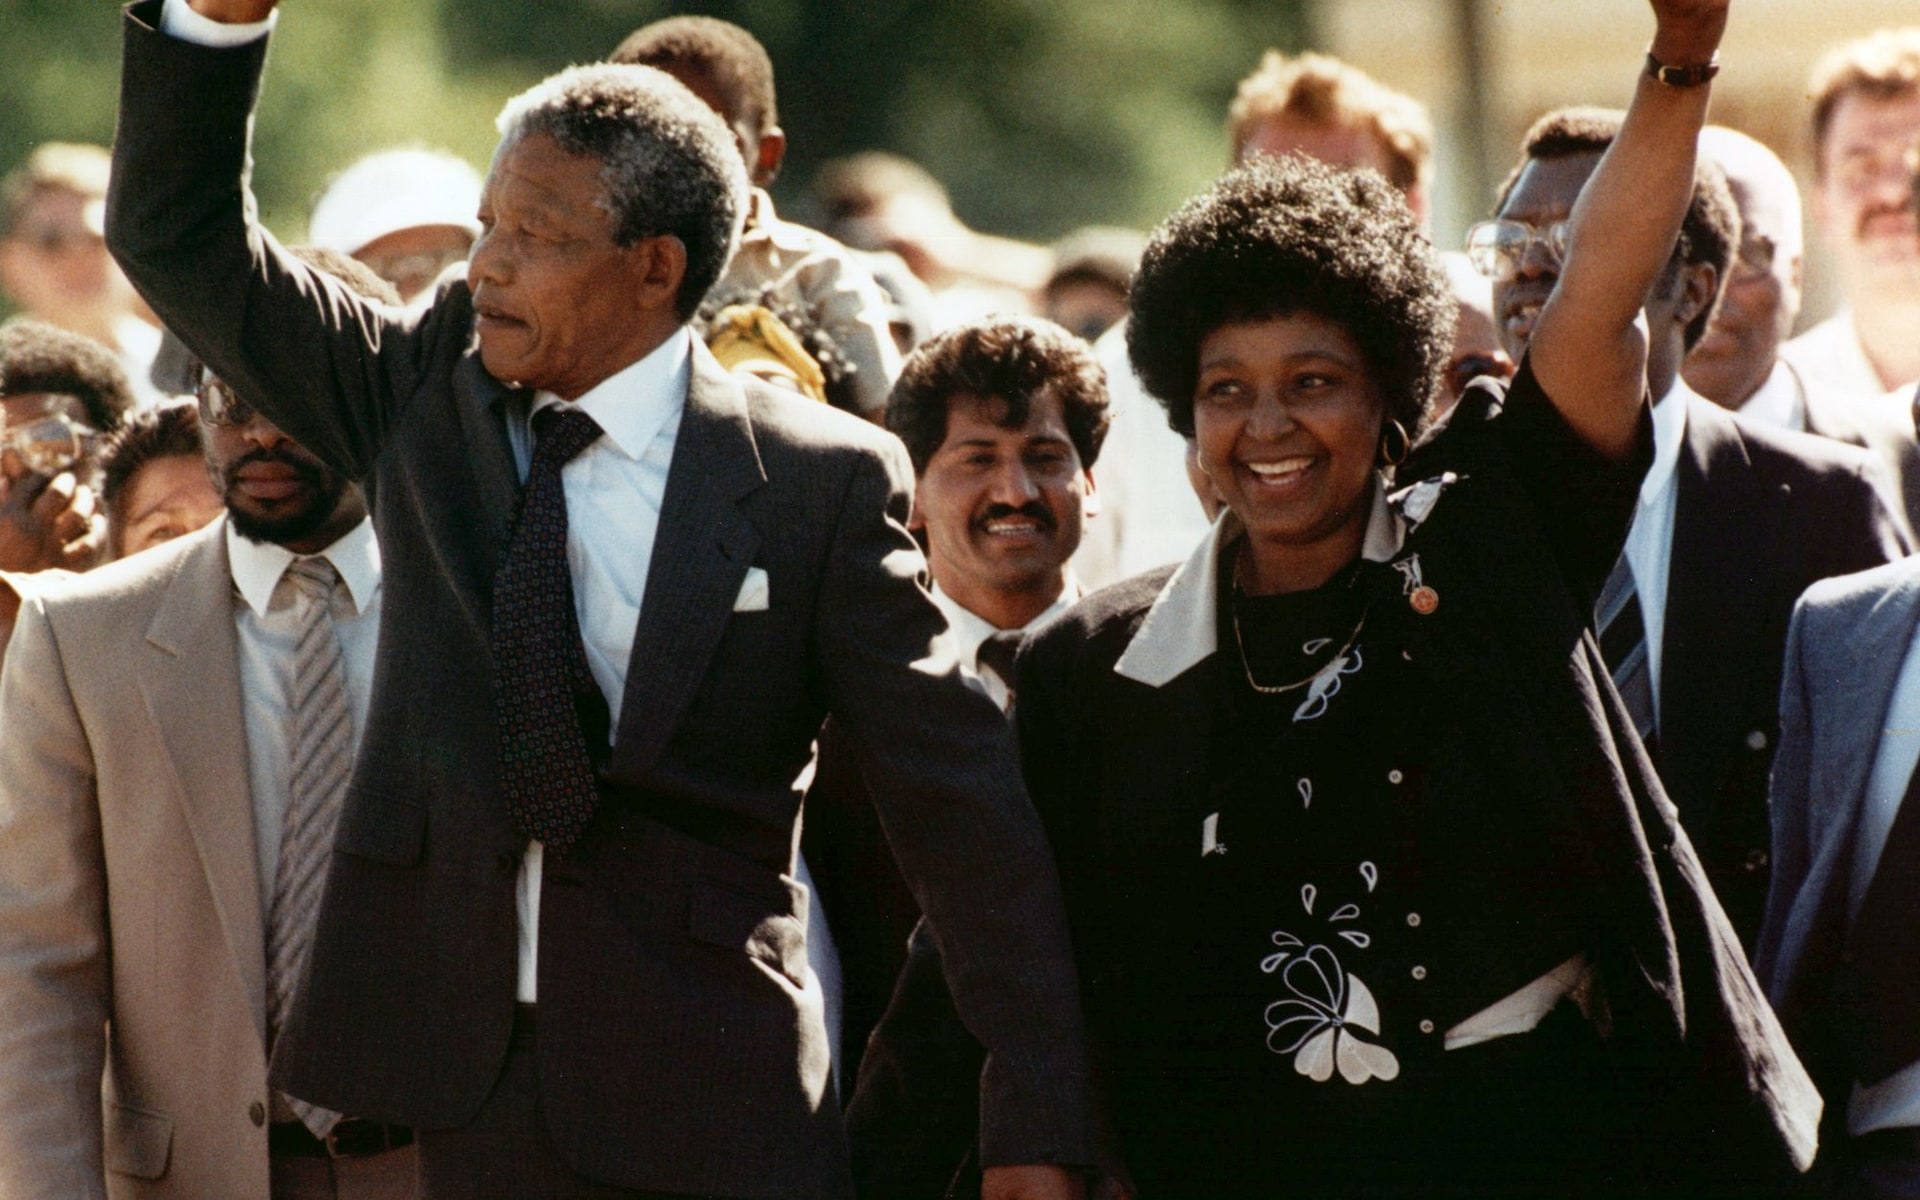 ANTI-APARTHEID ACTIVIST WINNIE MANDELA PASSES AWAY